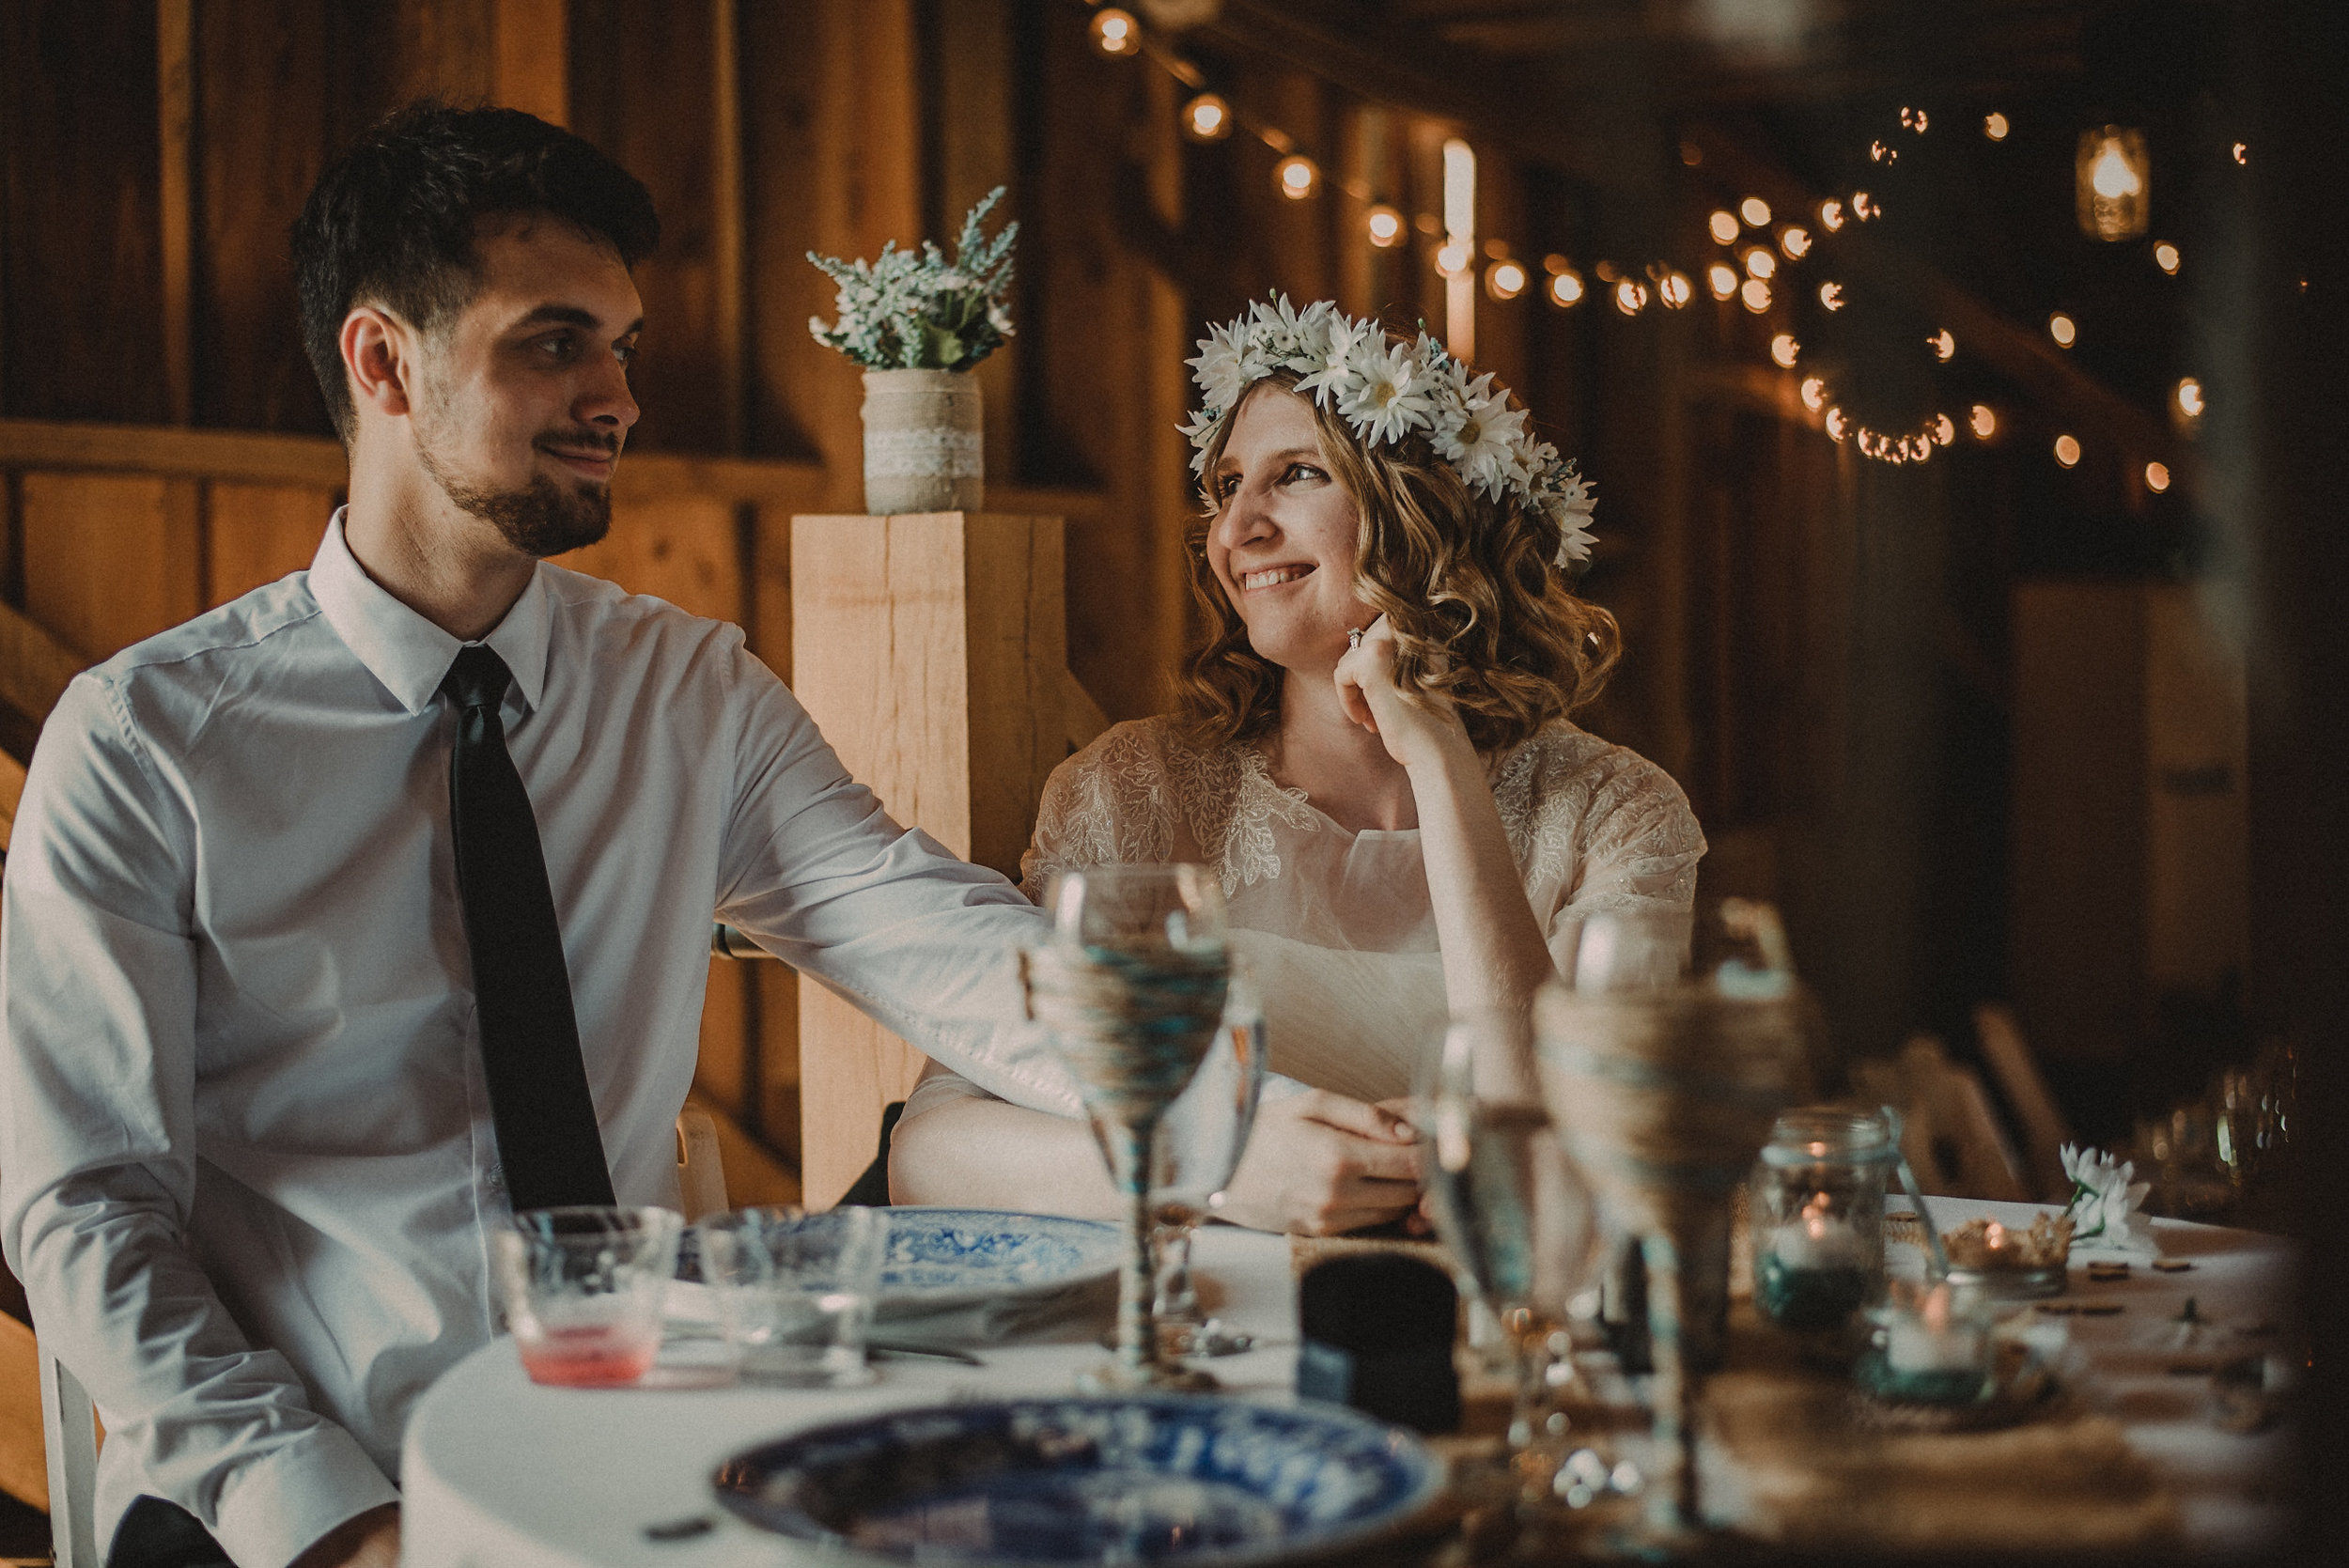 Bride and groom at reception table